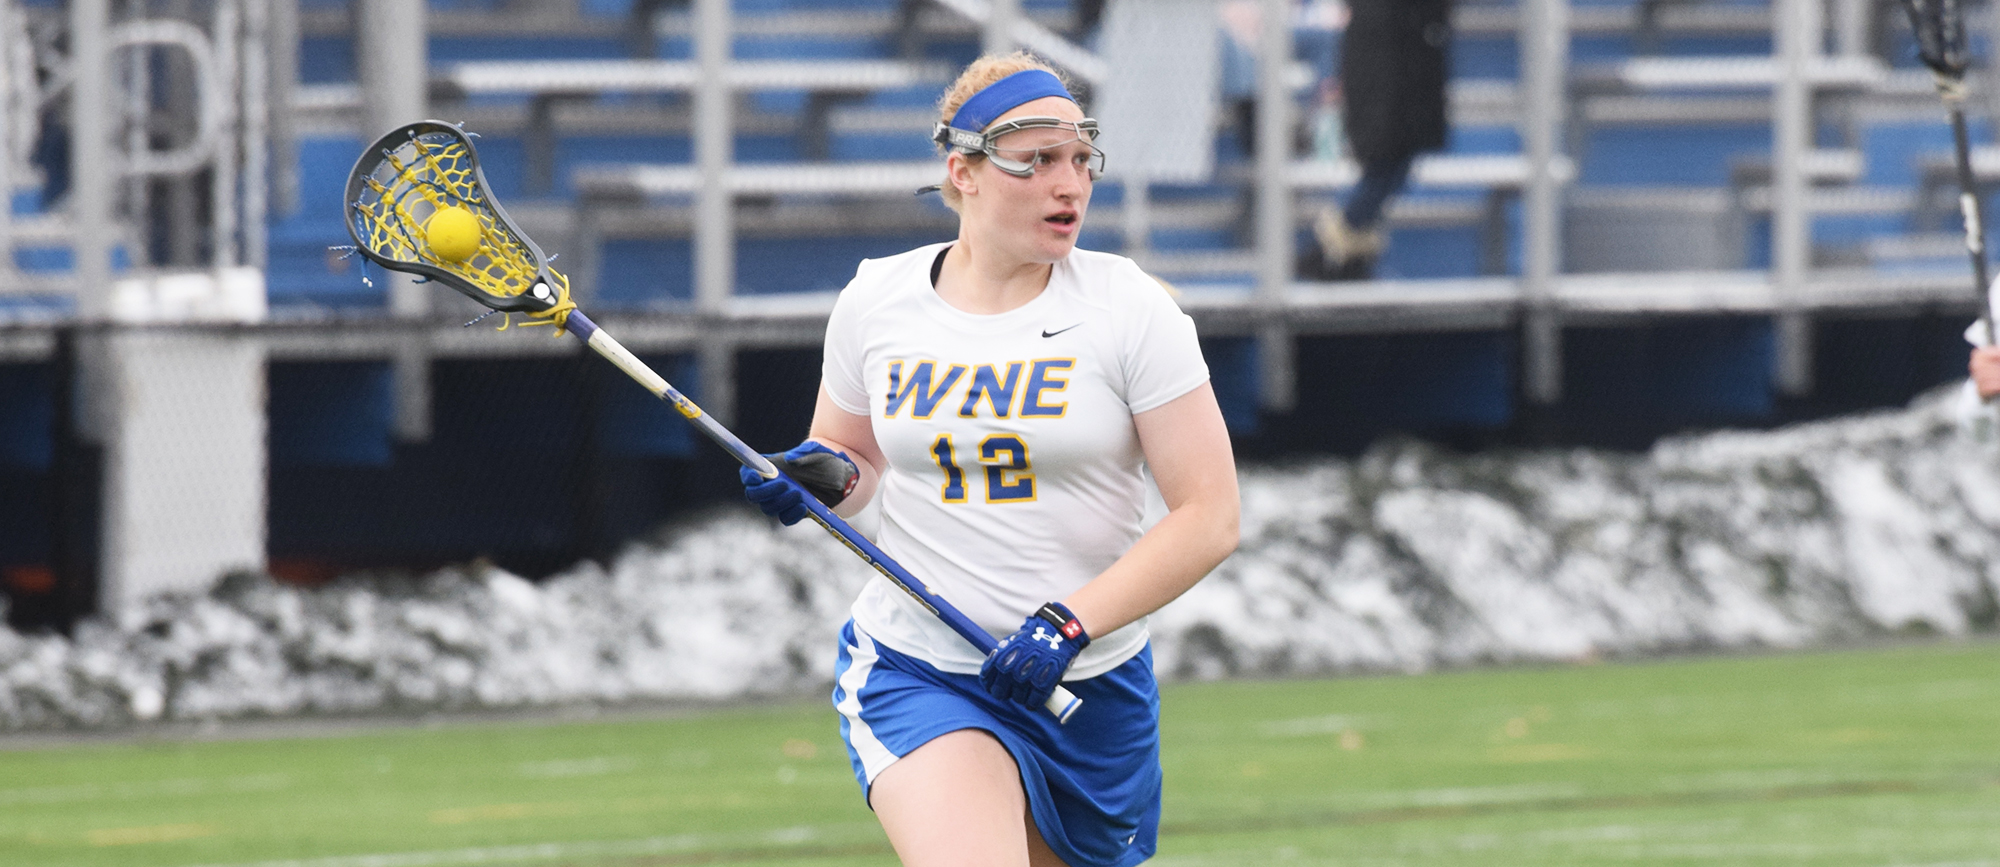 Junior Rebecca Allen recorded four draw controls, two assists and two ground balls in Western New England's 11-4 loss at UNE on Saturday. (Photo by Rachael Margossian)